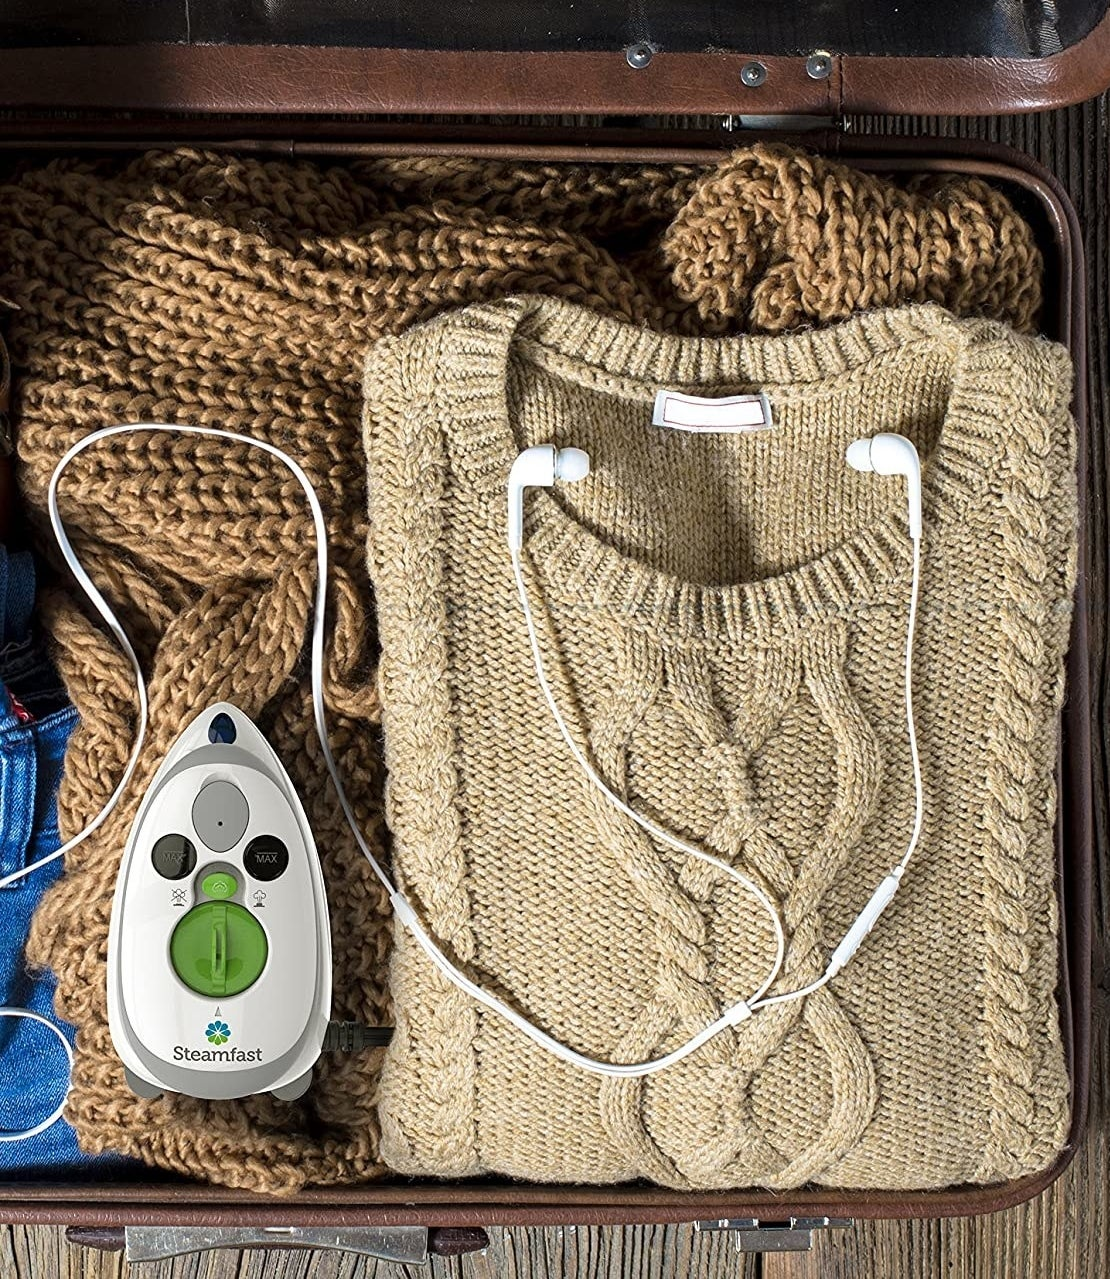 A flatlay of the tiny iron inside a suitcase next to a neatly folded sweater